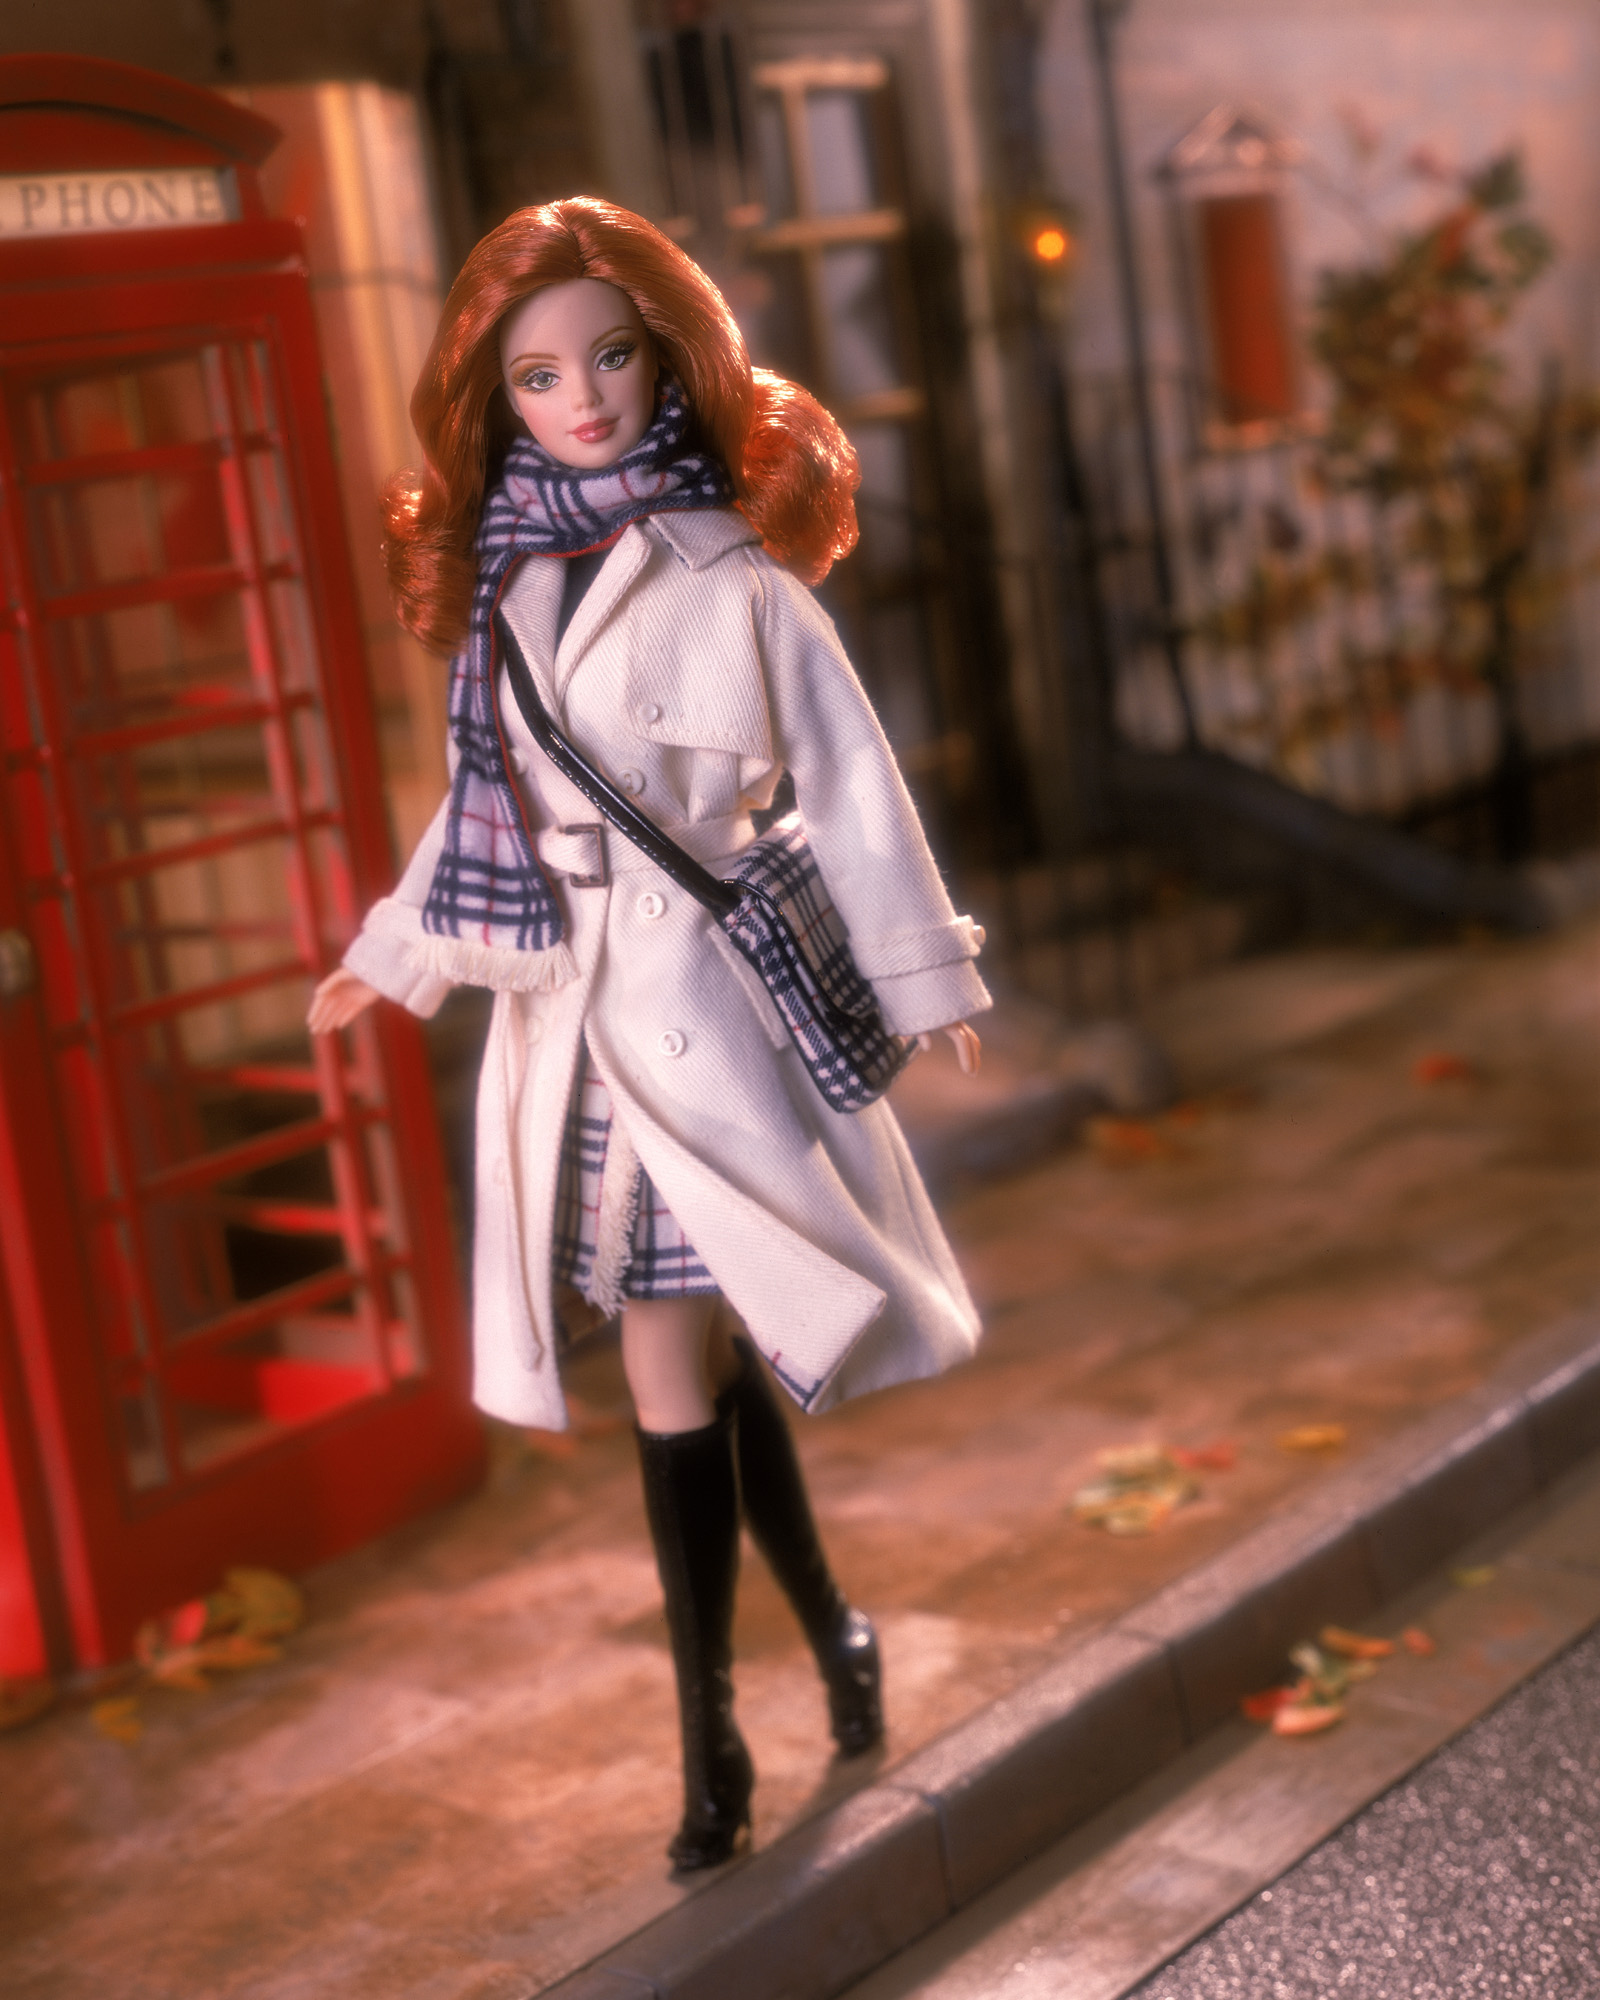 The Burberry Barbie Doll, released in 2001.